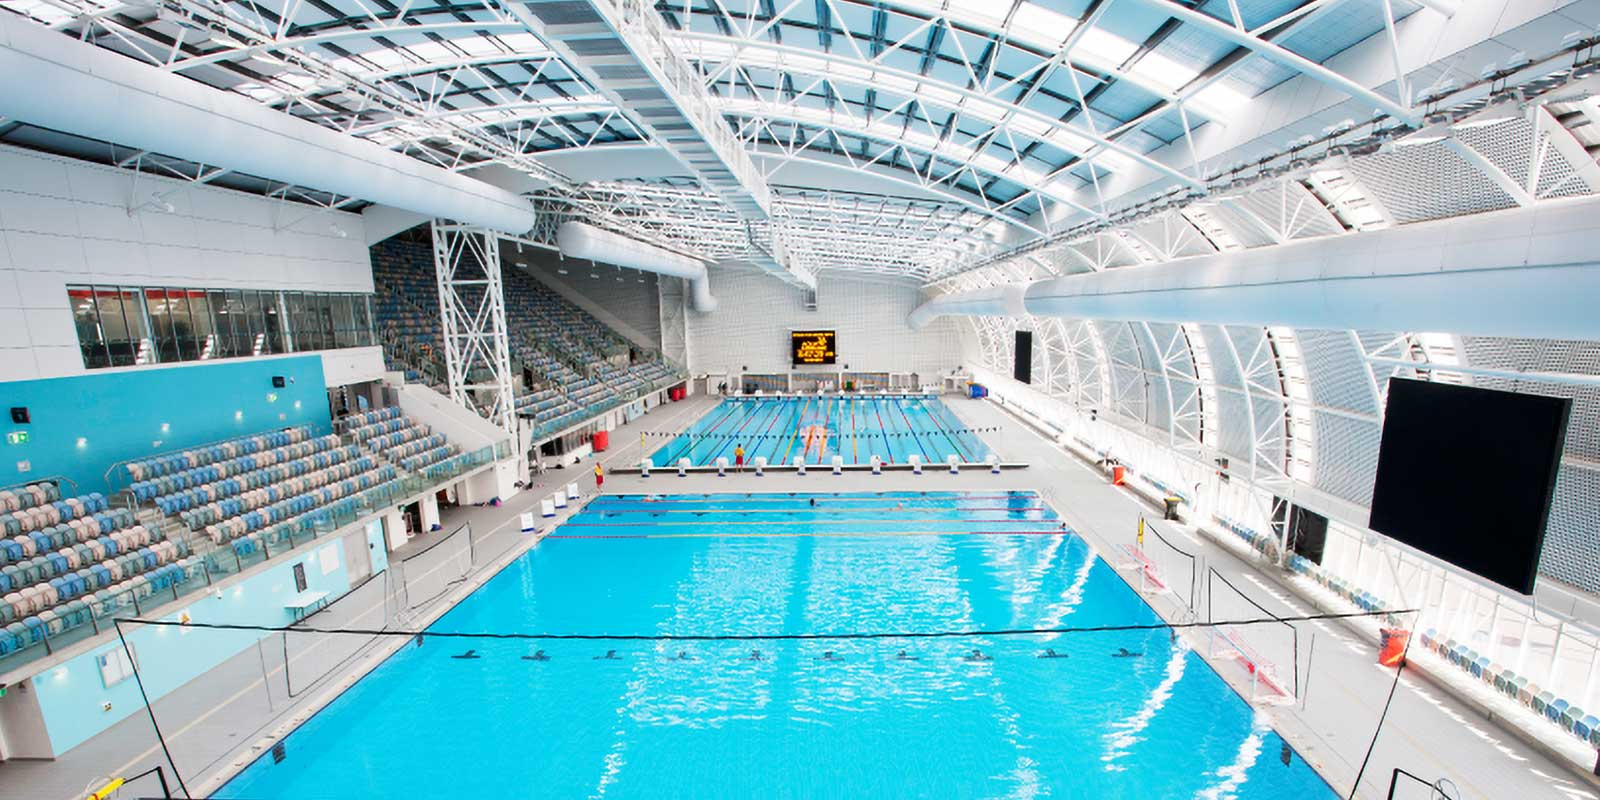 South Australia Aquatic Centre